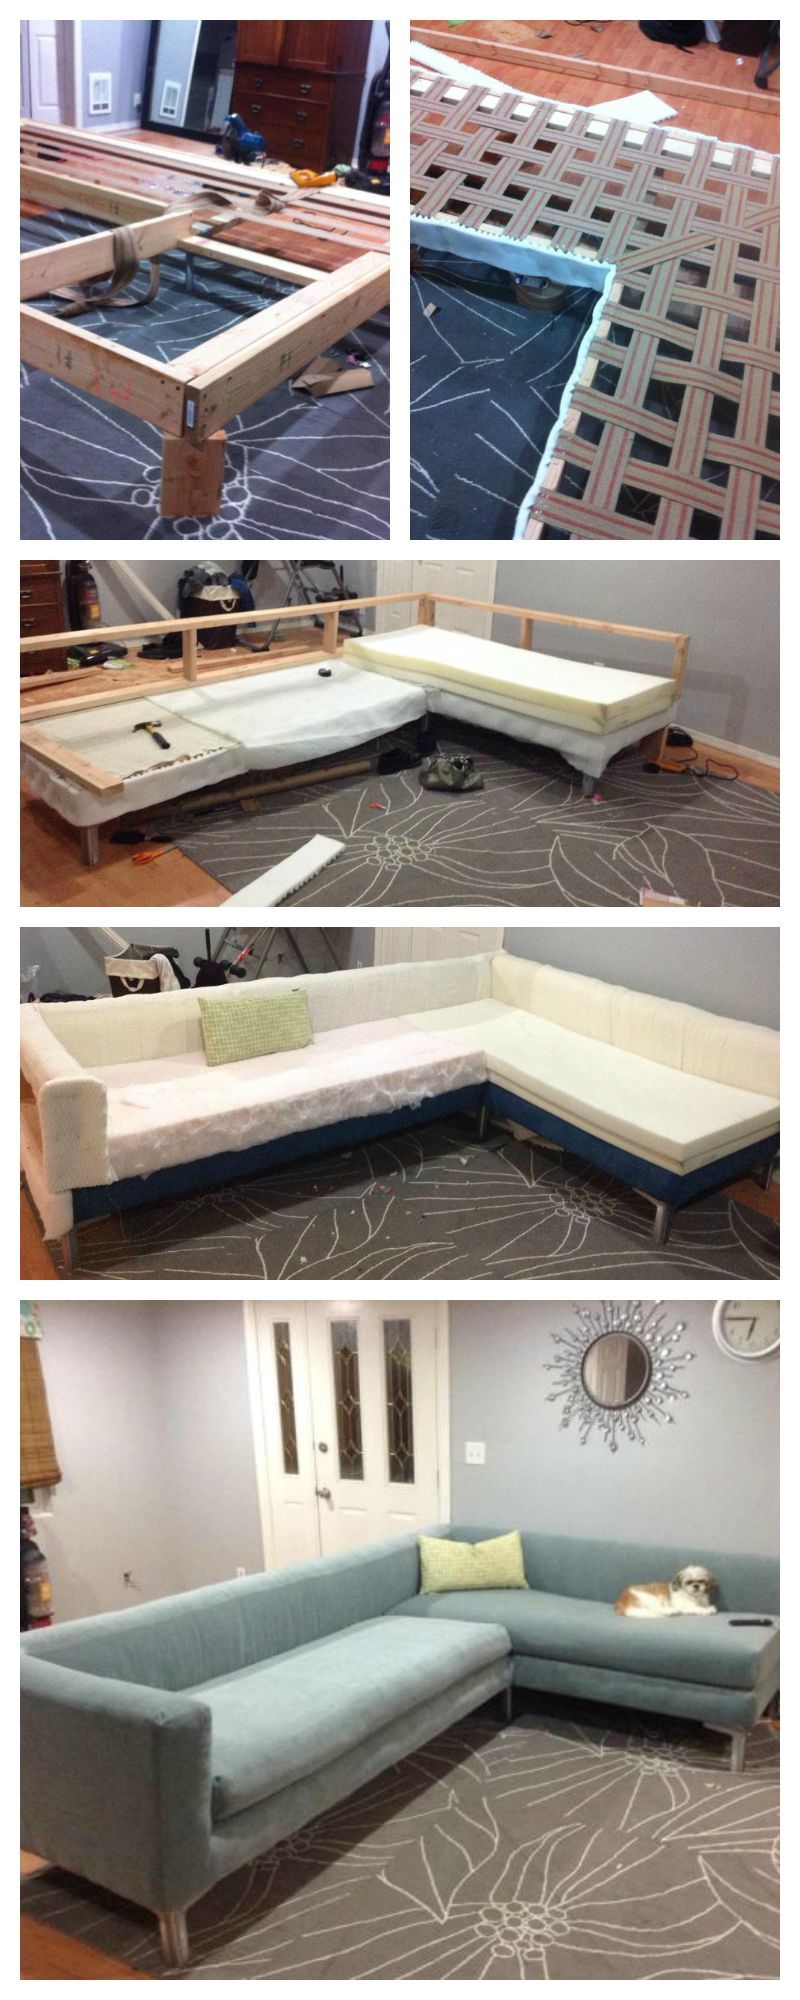 Diy sofa plans build your own couch build your own couch with - Build Your Own Sofa Or Couch Easy Diy 2x4 Frame Modern Style Blue Pretty